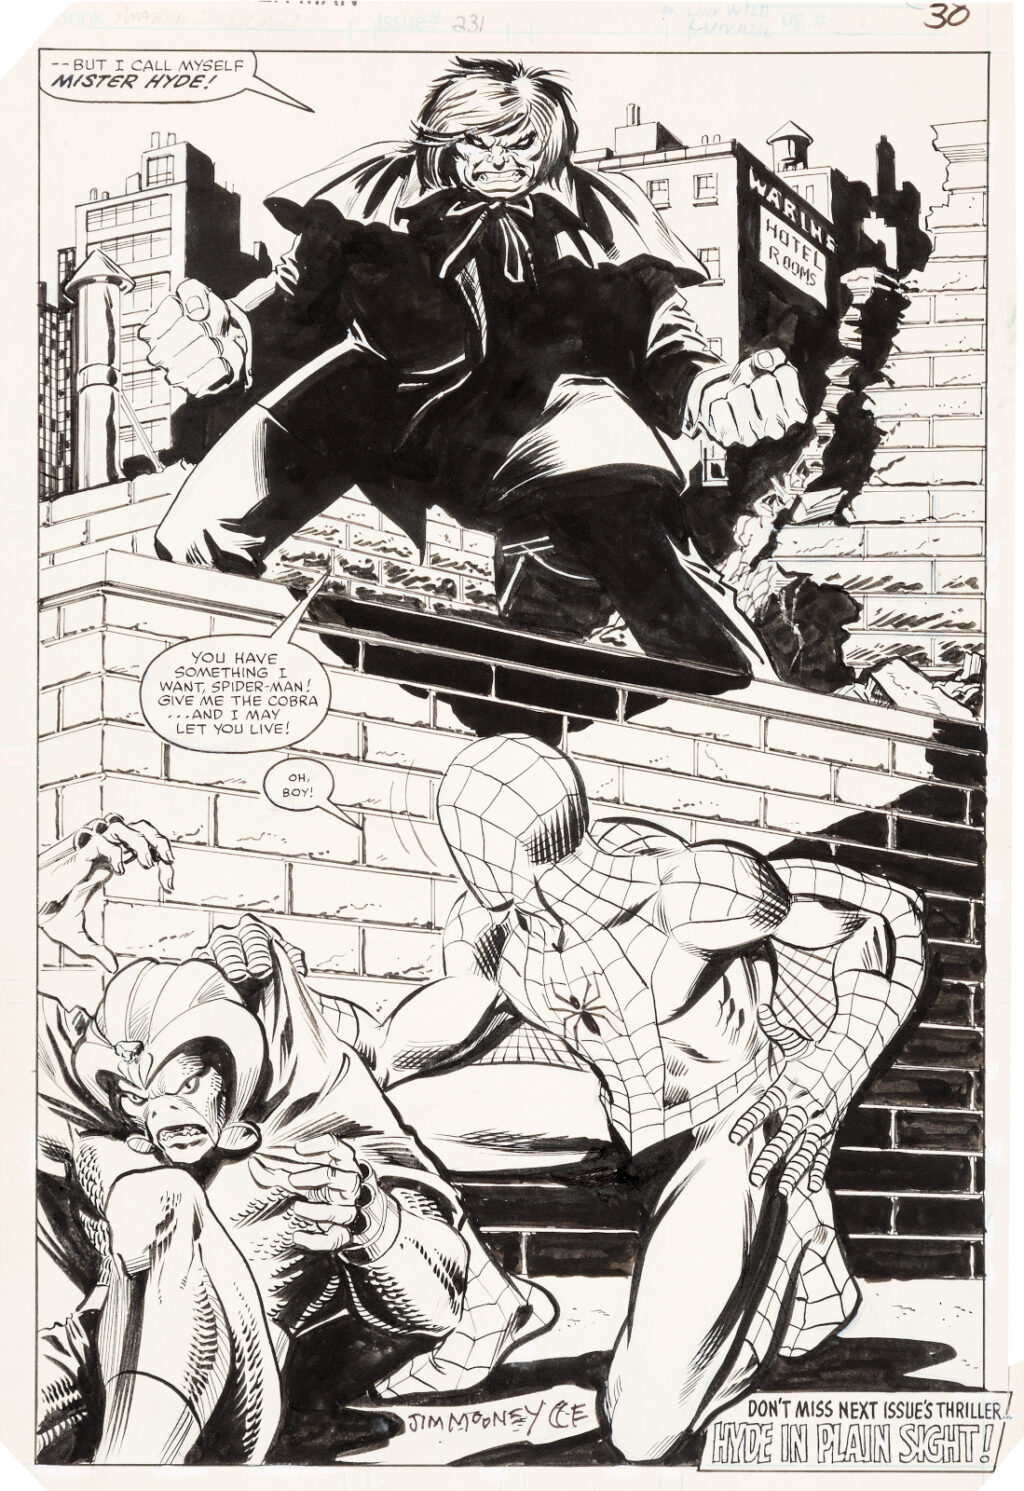 Amazing Spider Man issue 231 page 22 by John Romita Jr. and Jim Mooney